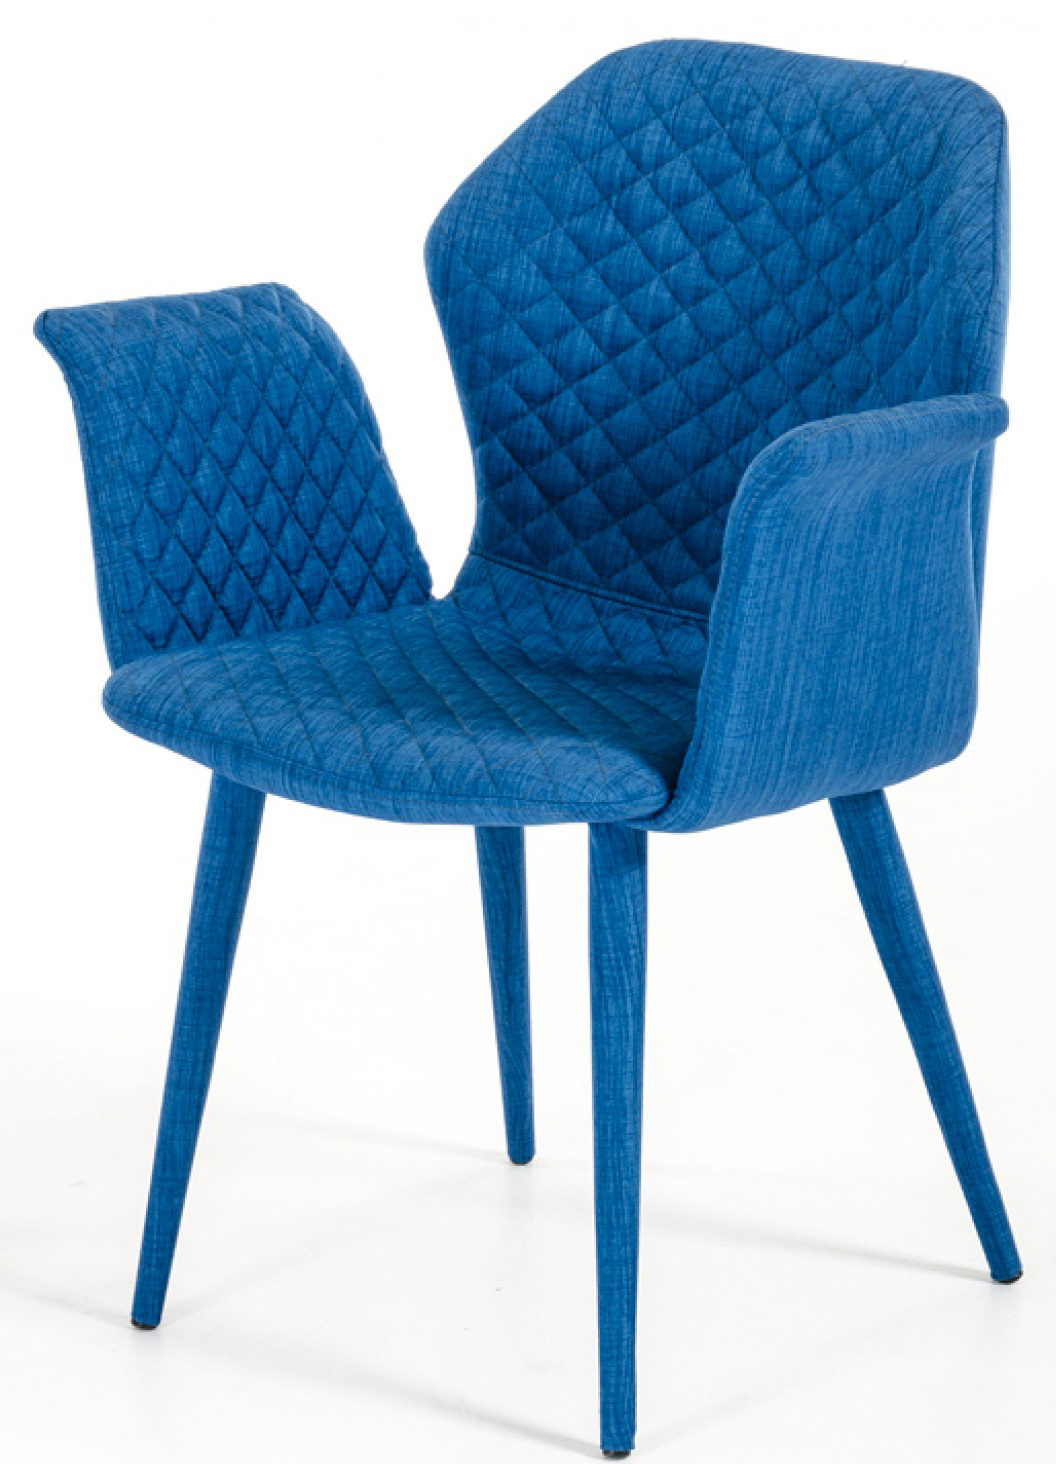 Blue Upholstered Dining Chairs Zaffiro Blue Upholstered Chair Dining Chair Blue